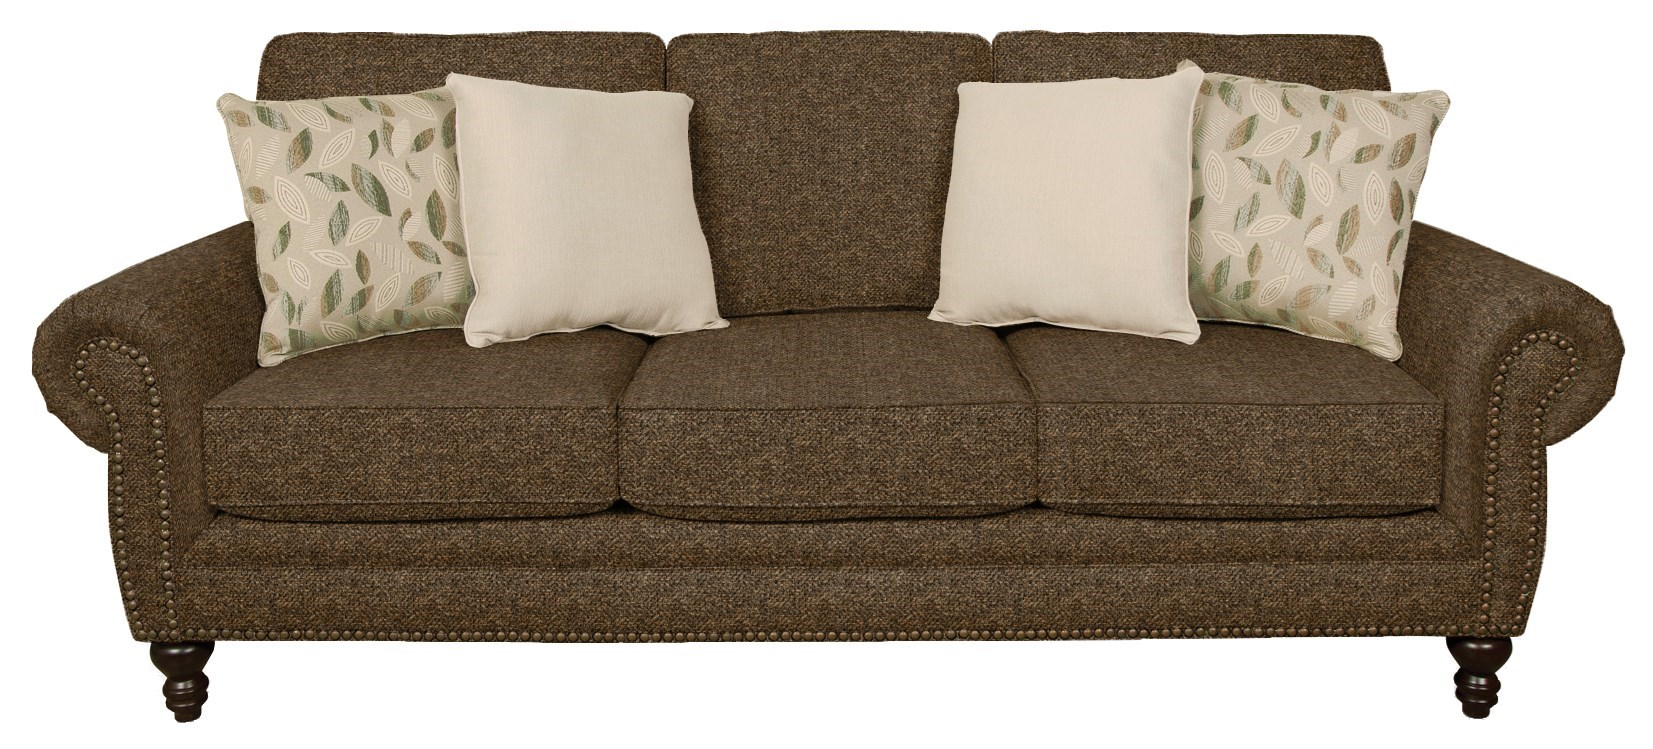 England Amix Traditional Styled Sofa With Nail Head Trim